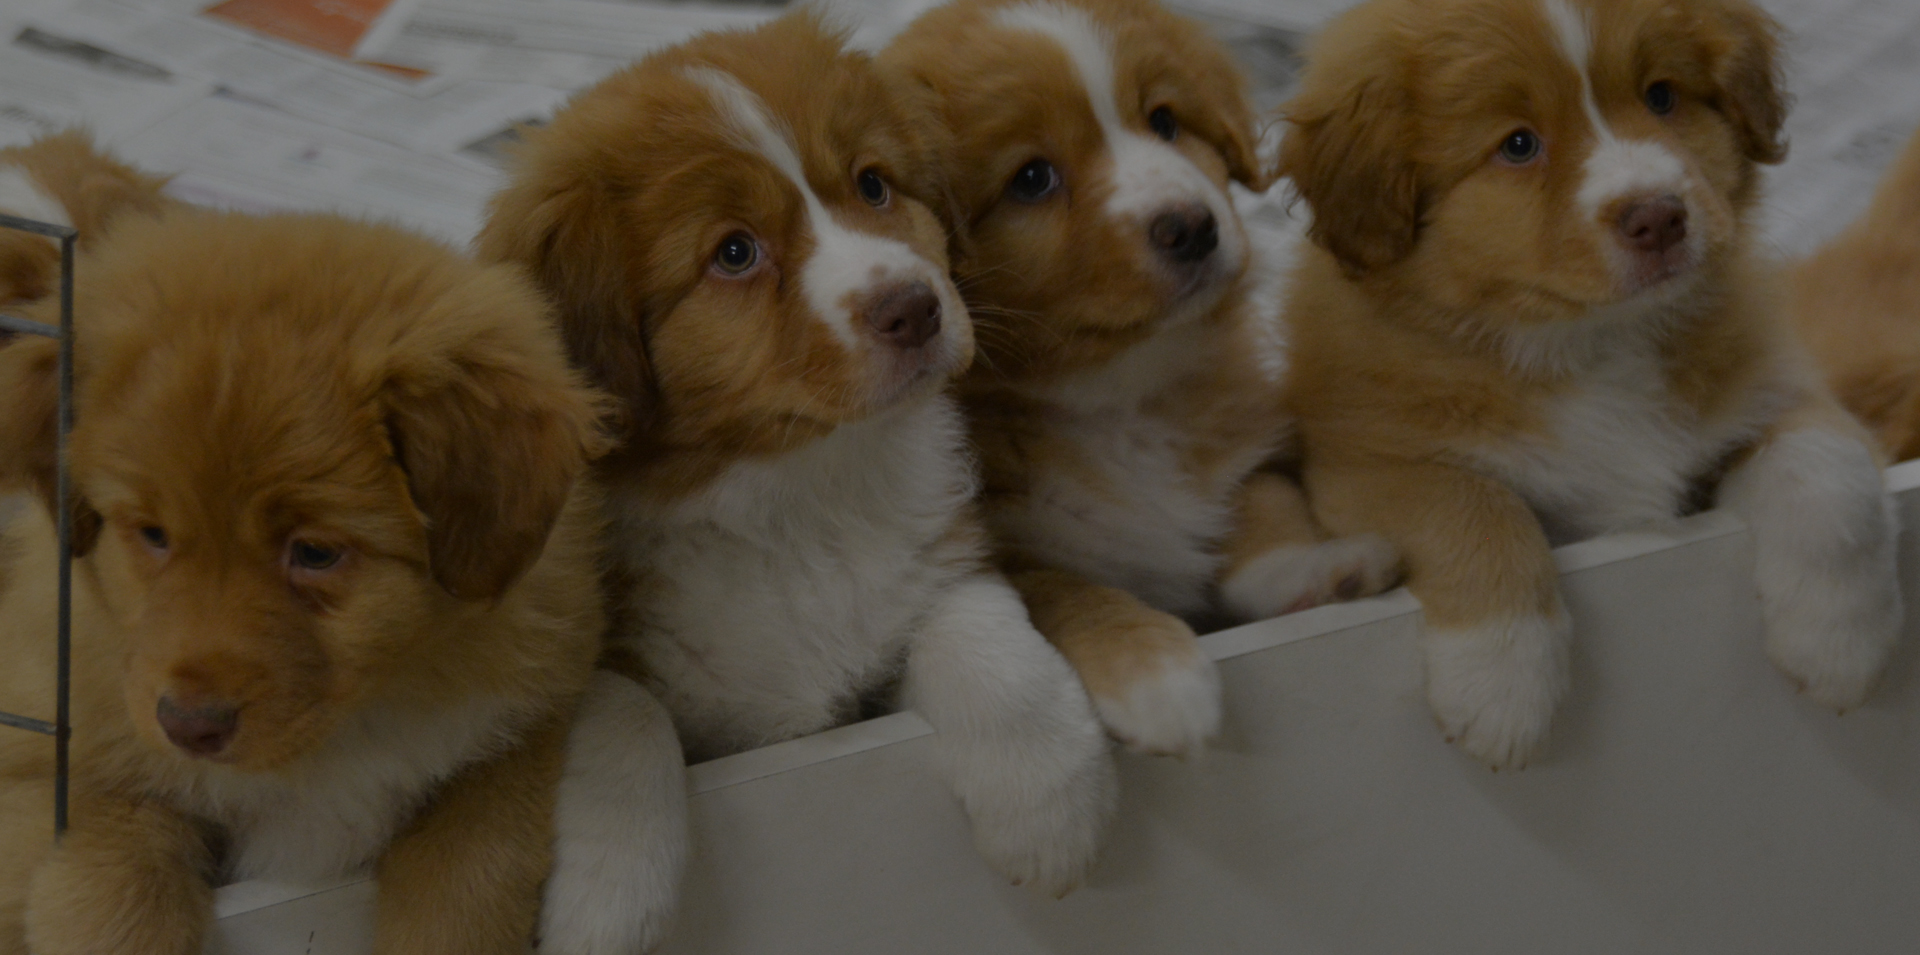 Nova Scotia Duck Tolling Retriever Puppy - Nova Scotia Duck Tolling Retriever Club of Canada - Duck Tolling Retriever Puppy